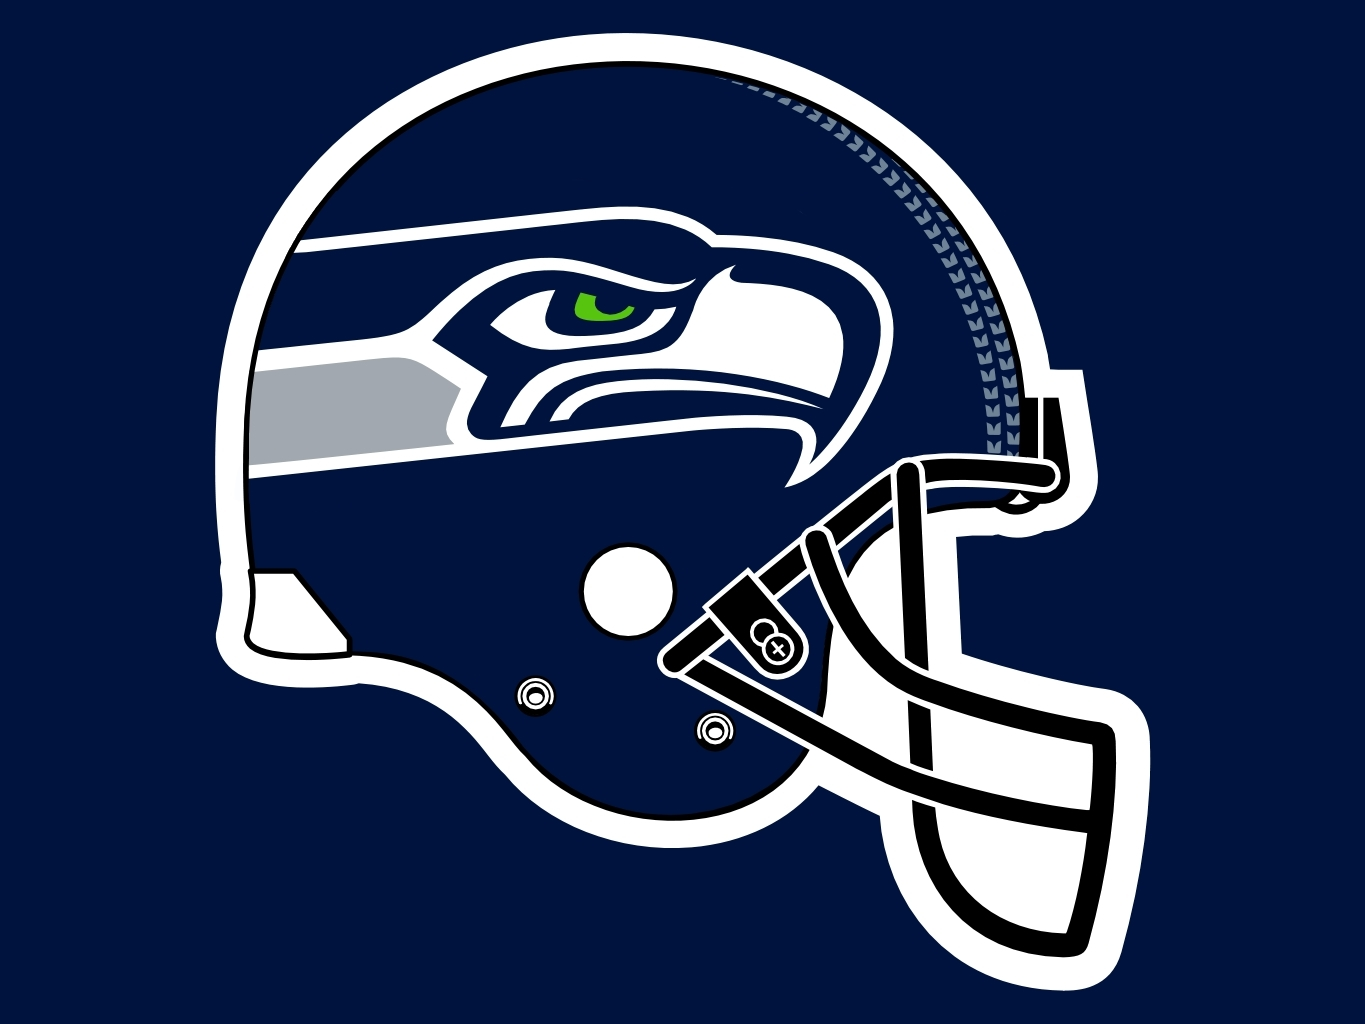 Free Download Seattle Seahawks Logo Images Search Bicaracoid 1365x1024 For Your Desktop Mobile Tablet Explore 46 New Seahawks Logo Wallpaper Seahawks 2016 Schedule Wallpaper Seattle Seahawks Wallpaper Downloads Free Seattle Seahawks Wallpaper